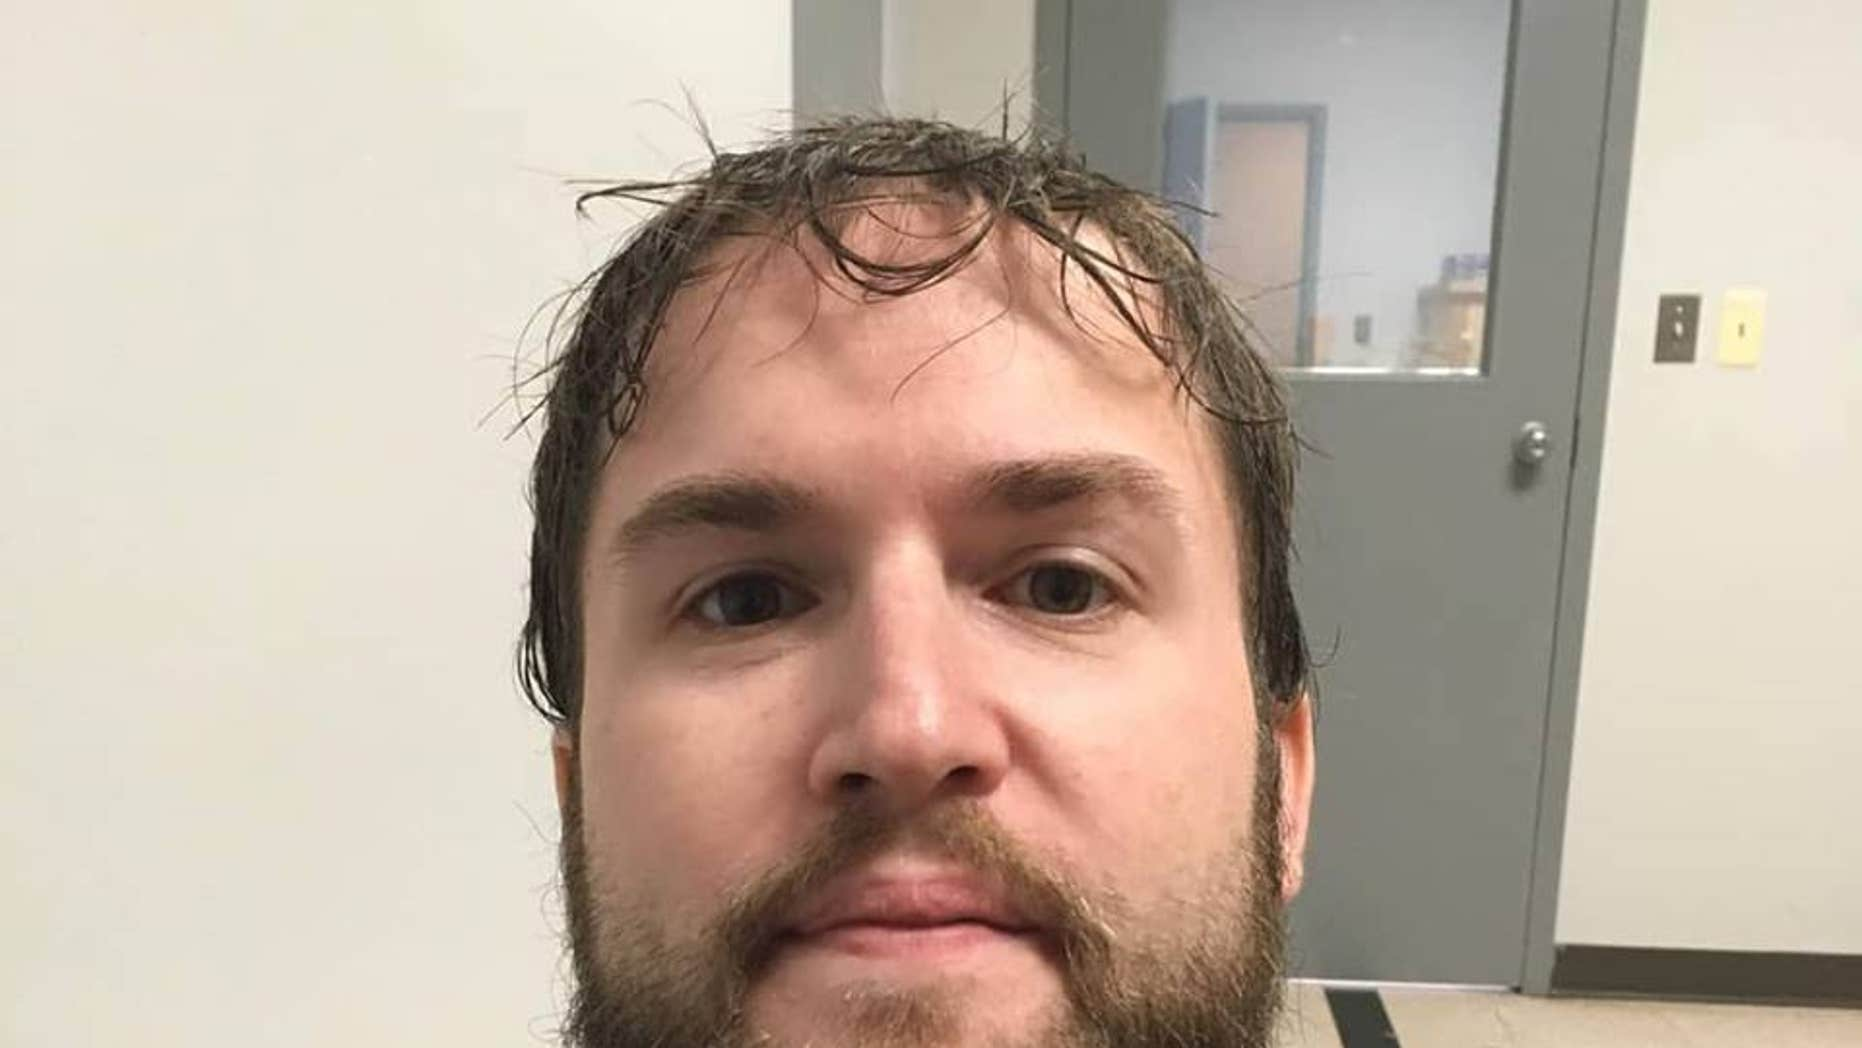 Jeffrey Wolfman was observed dropping stolen U.S. currency following a bank robbery Wednesday in Bedminster, a prosecutor's office says.